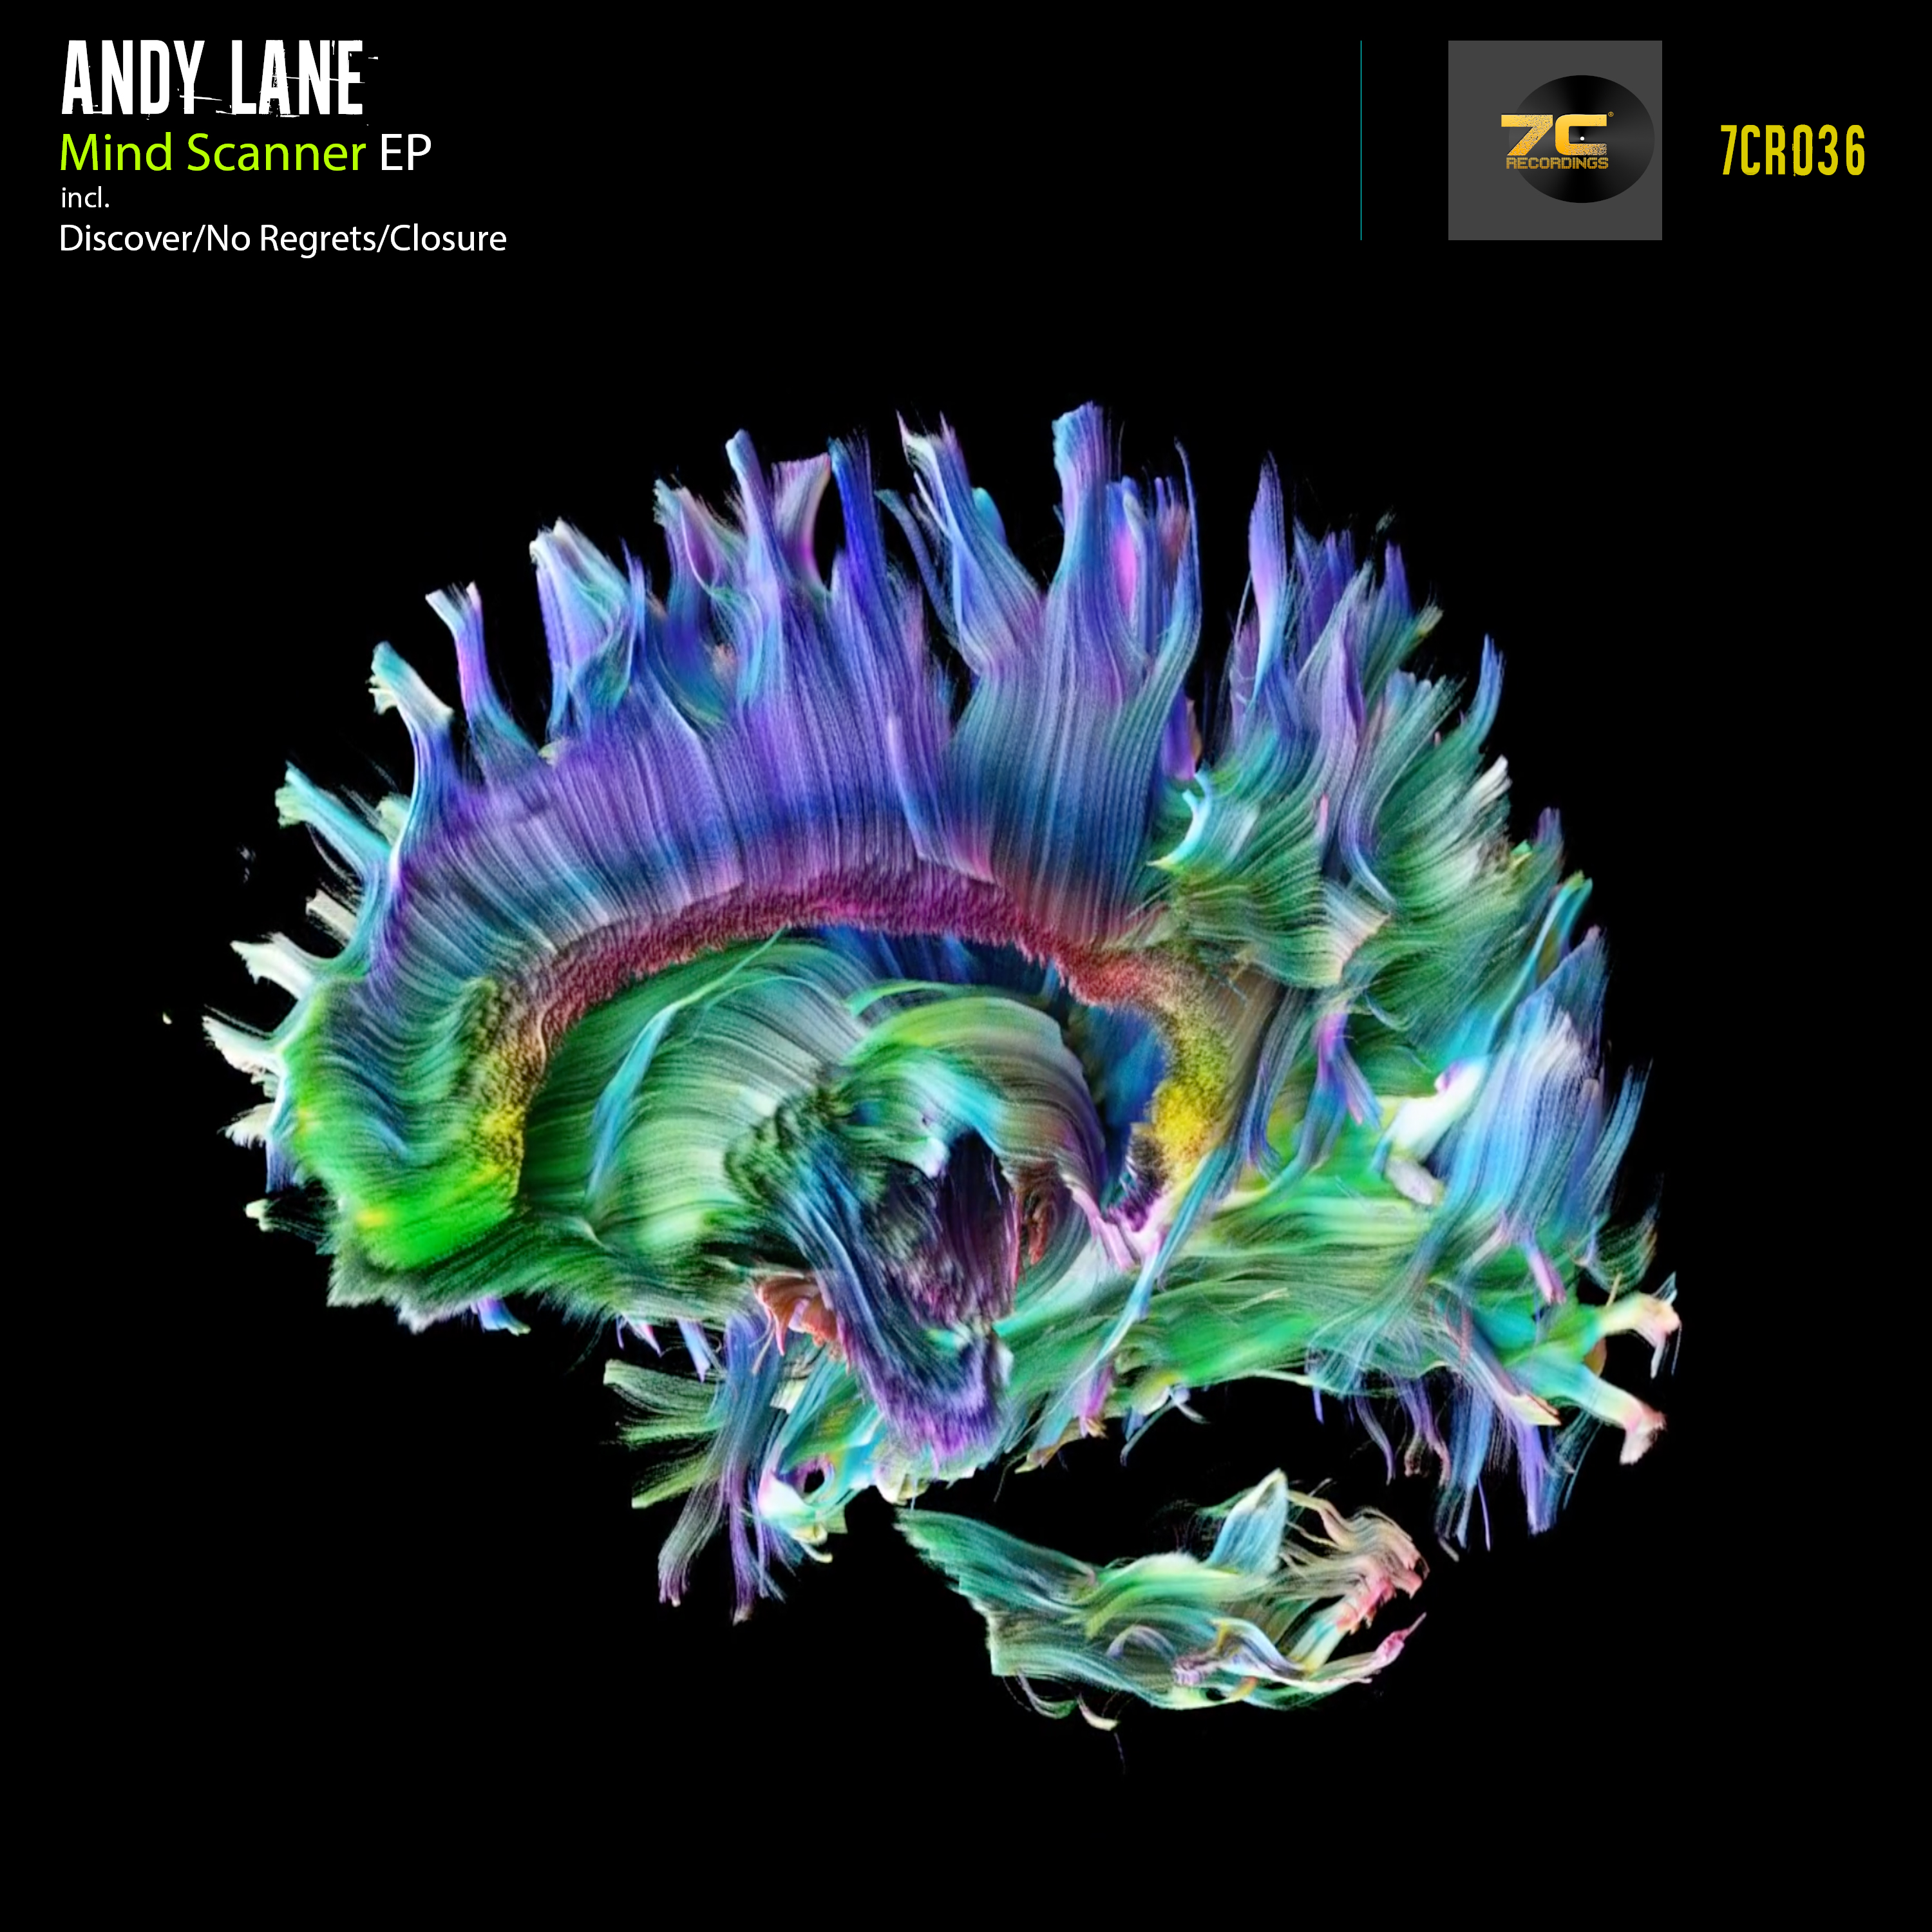 Andy Lane - Mind Scanner E.P.